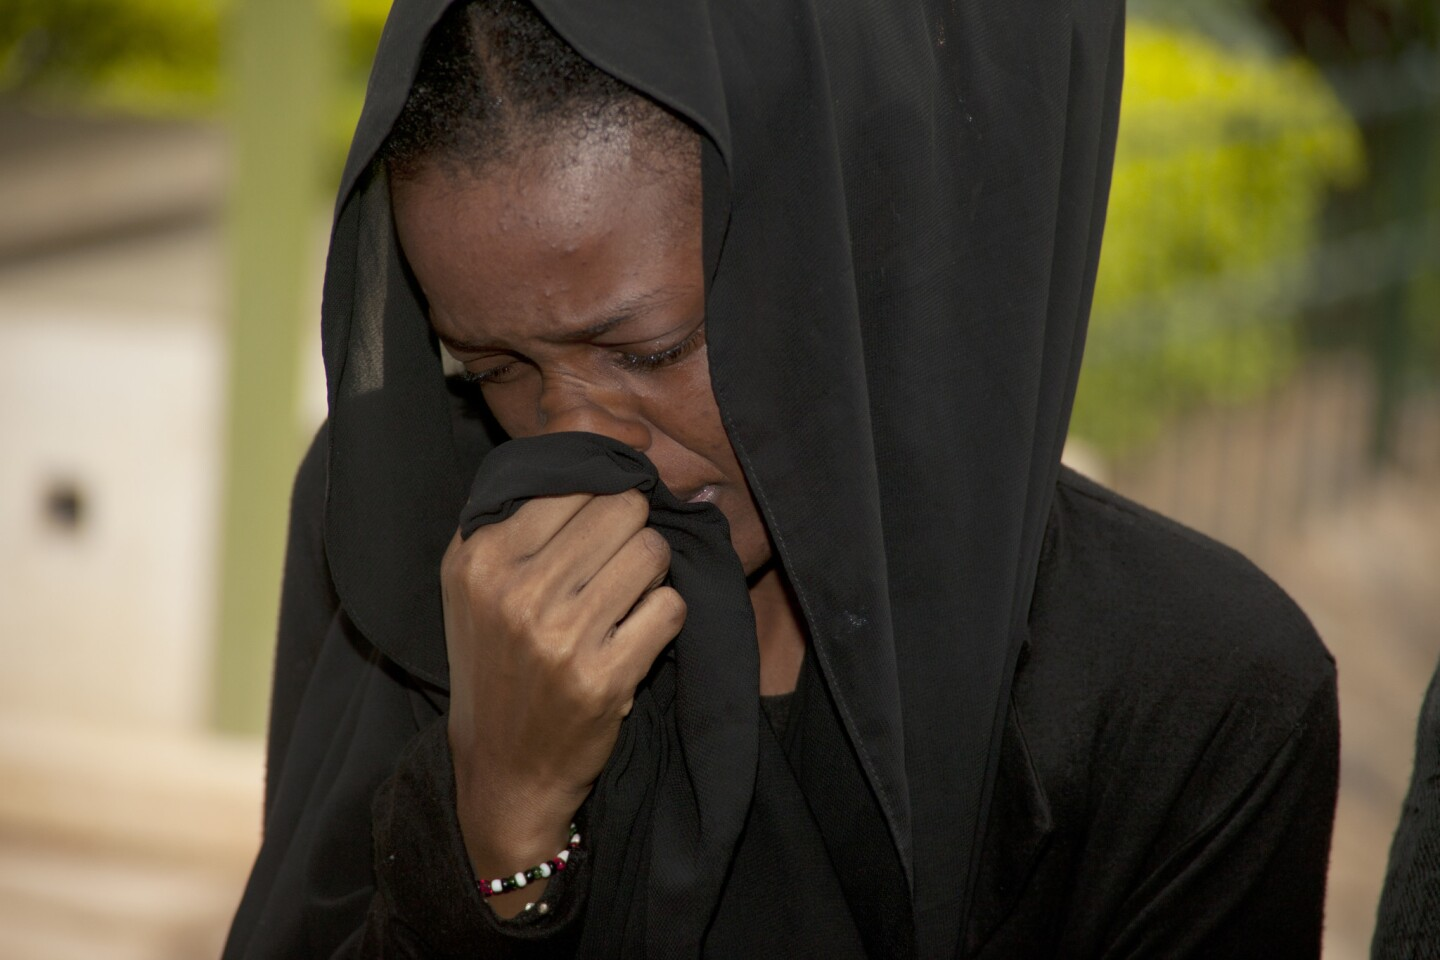 A weeping relative reacts after viewing the body of a family member killed in Thursday's attack on a university, at Chiromo funeral home, Nairobi, Kenya, Saturday, April 4, 2015.